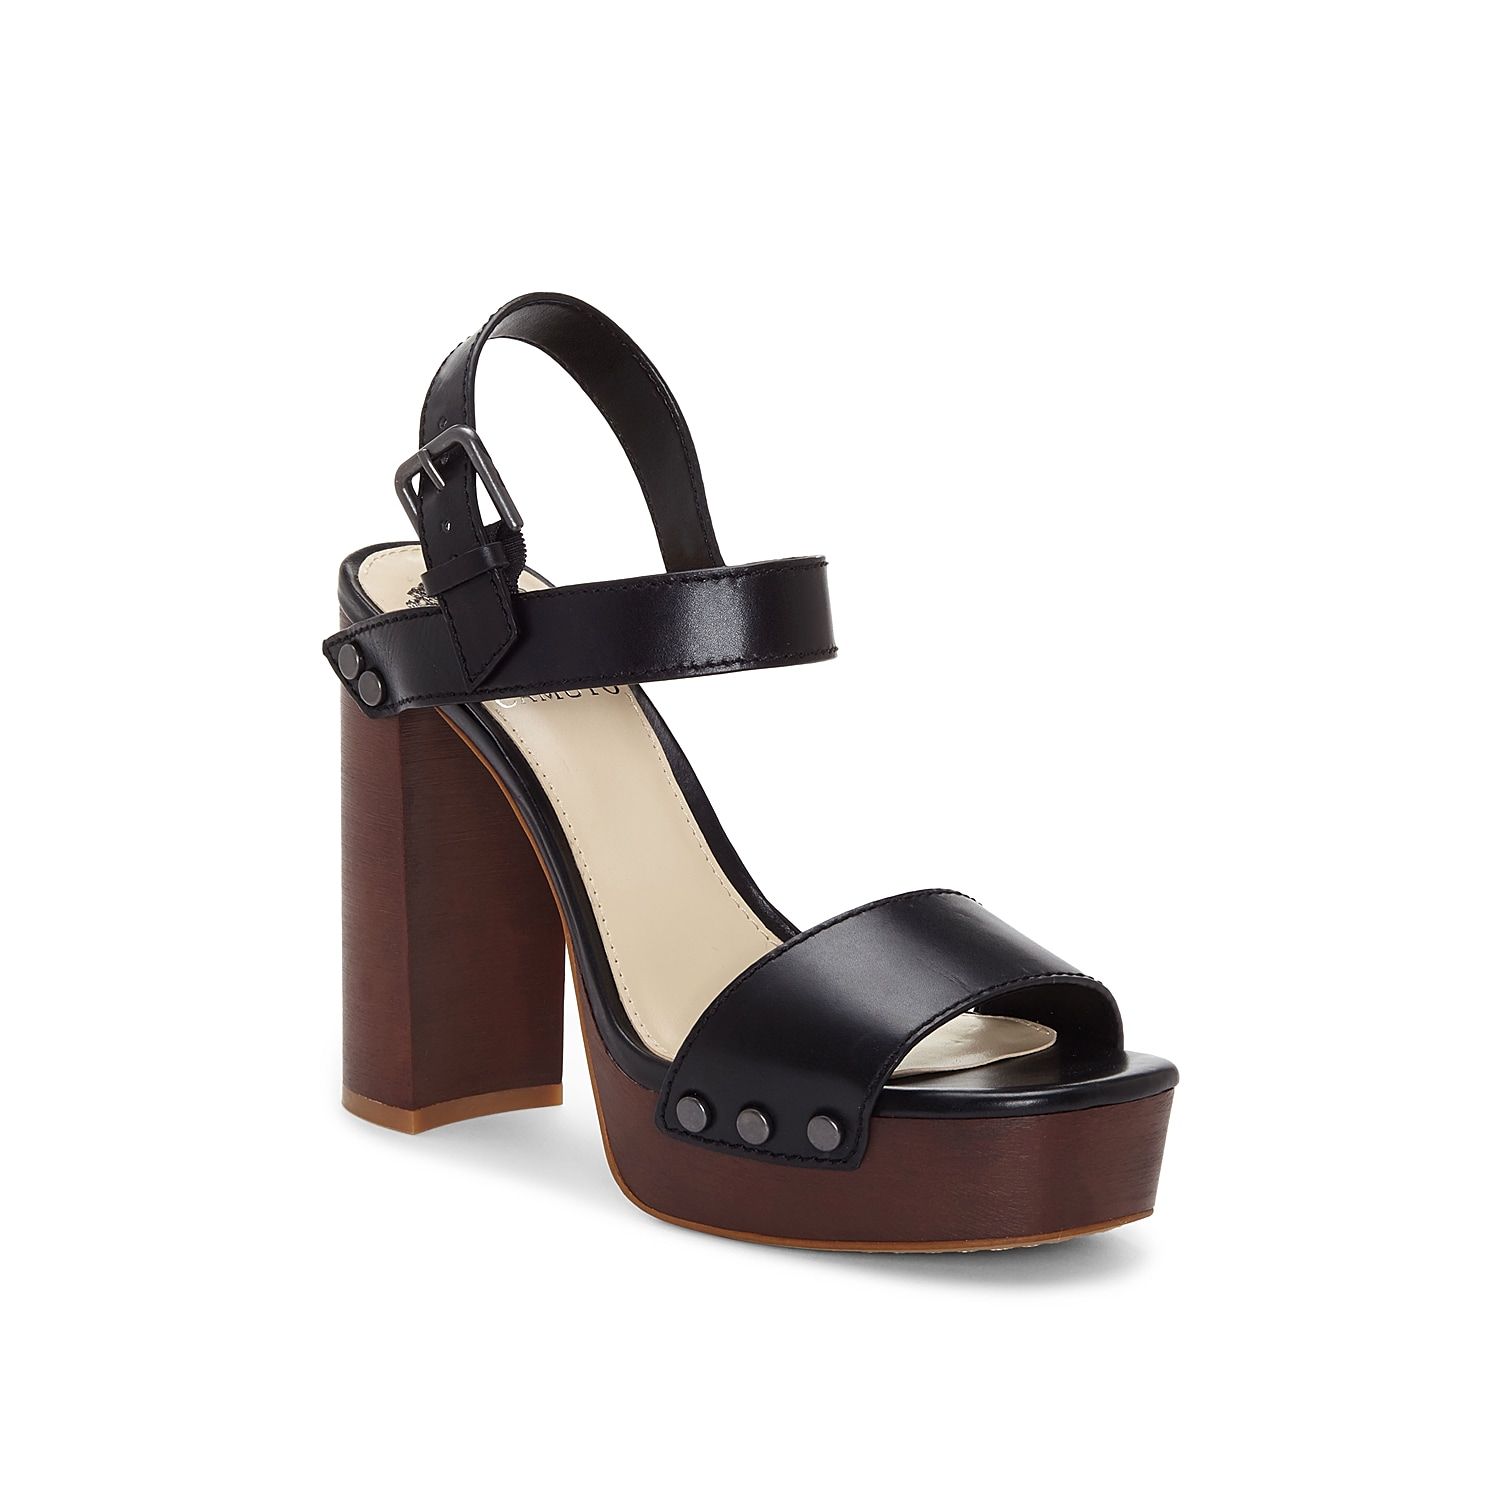 Channel your inner fashionista with the Lethalia sandal from Vince Camuto. This two-piece silhouette is fashioned with studded accents and a towering heel for all the height!